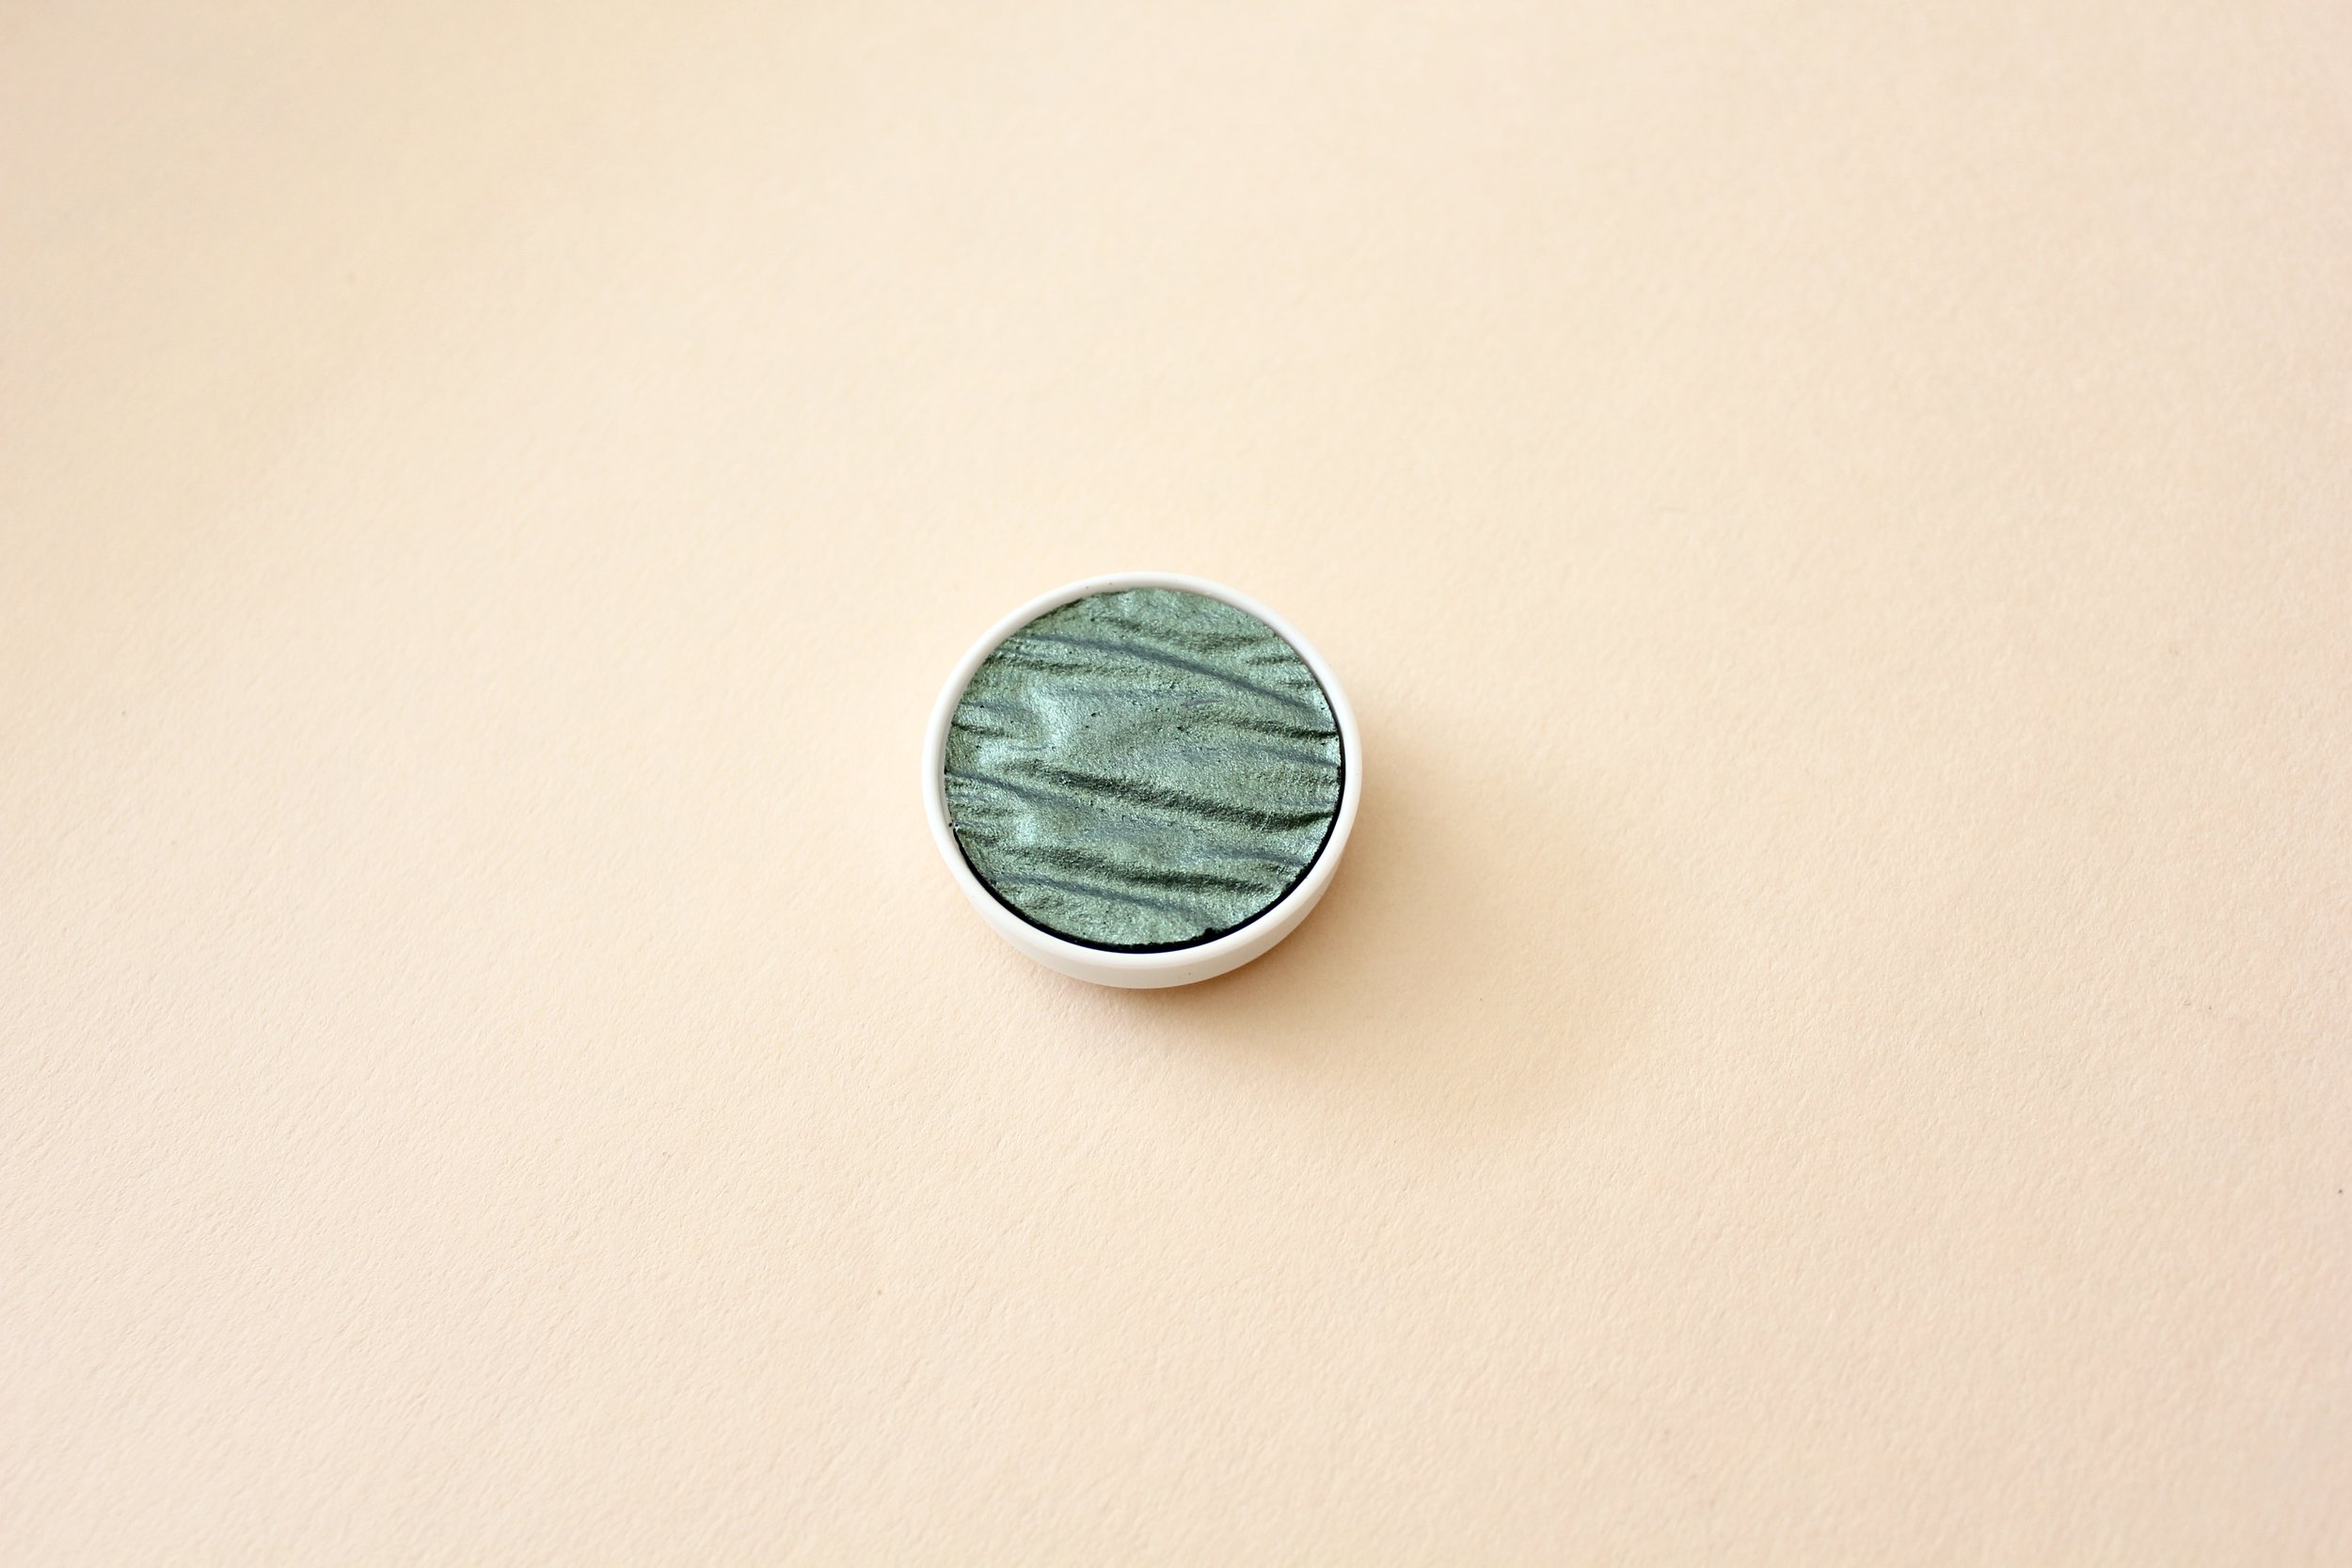 LR00106 Coliro Moss Green 30mm ($8)